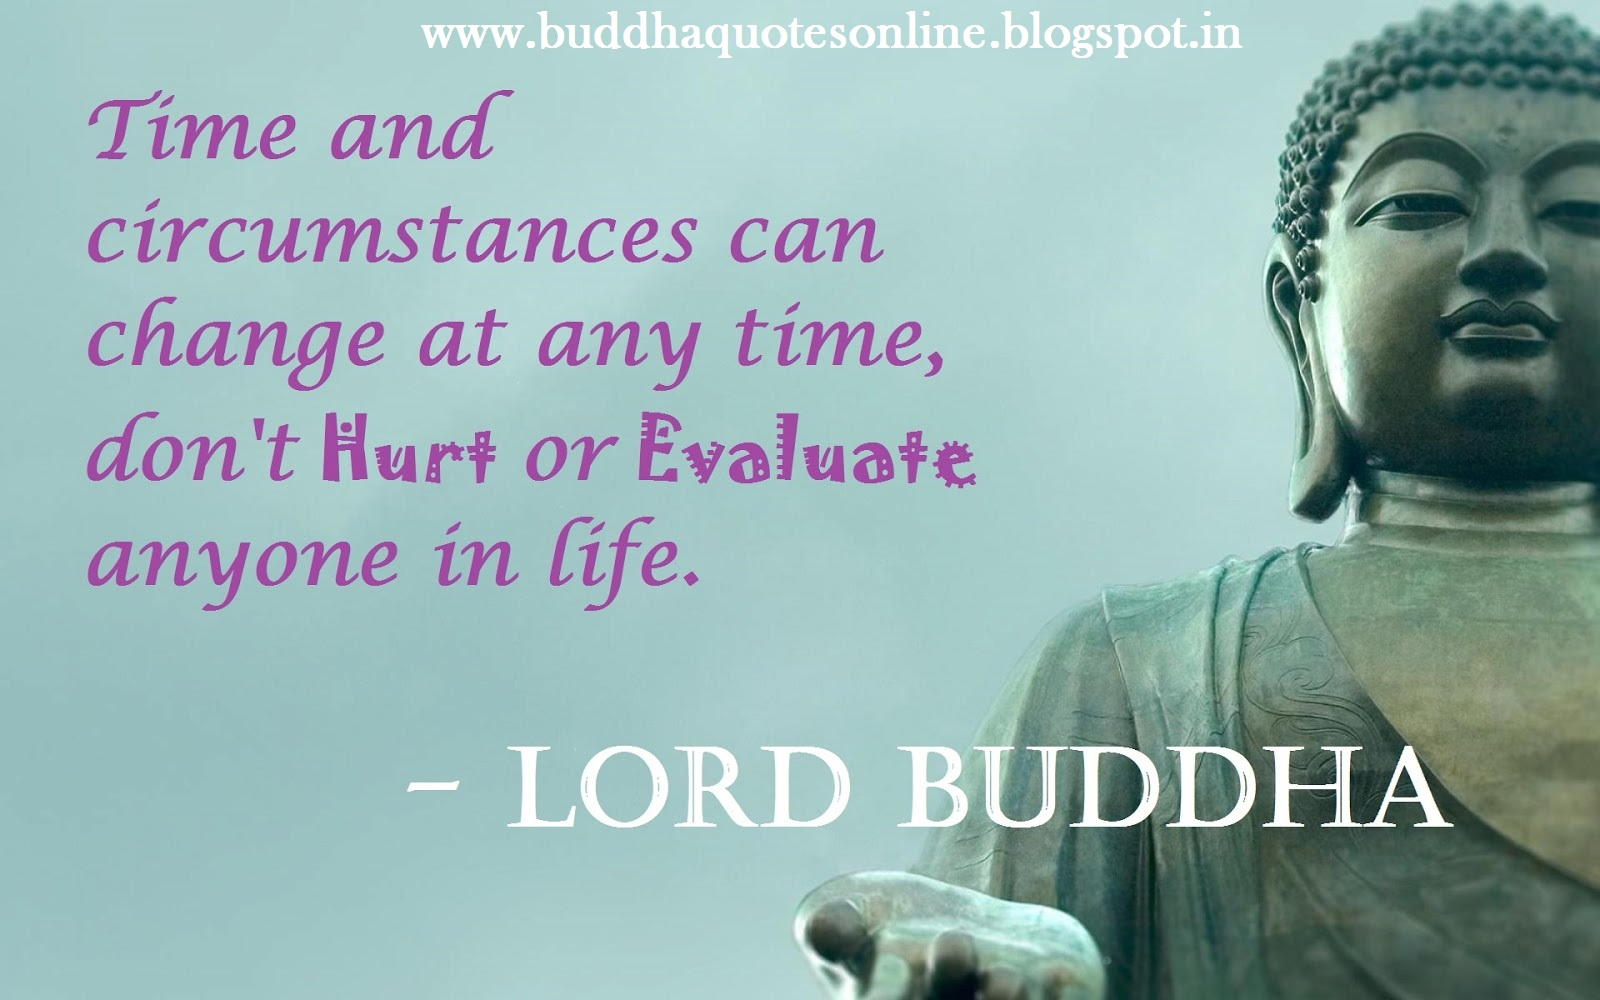 Buddha Quotes Online Top 10 Buddha Quotes On Motivation Famous